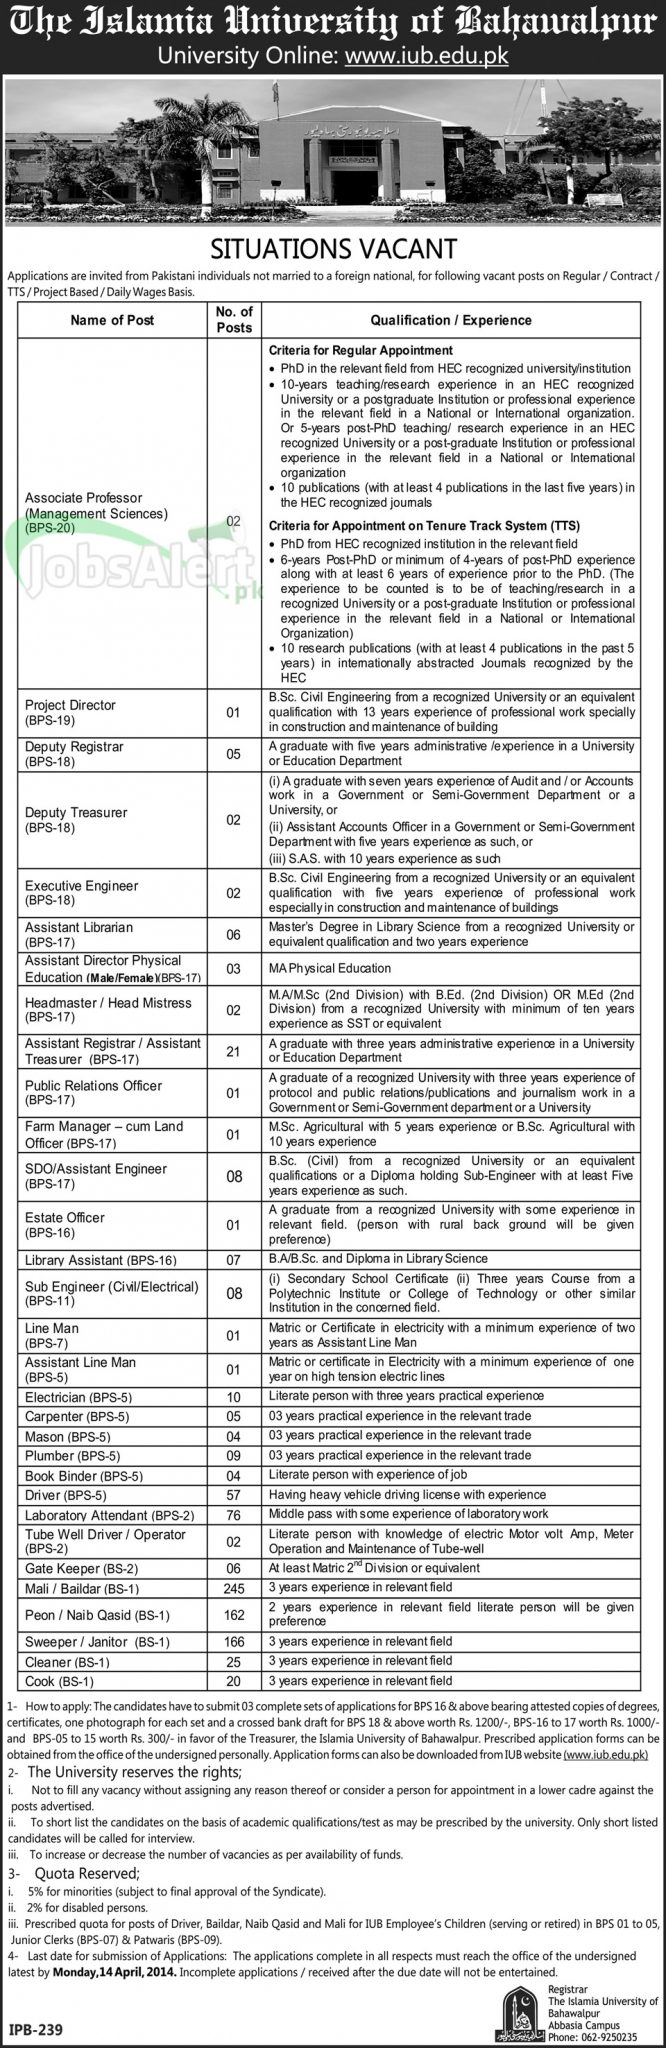 Government Jobs 2014 in The Islamia University of Bahawalpur